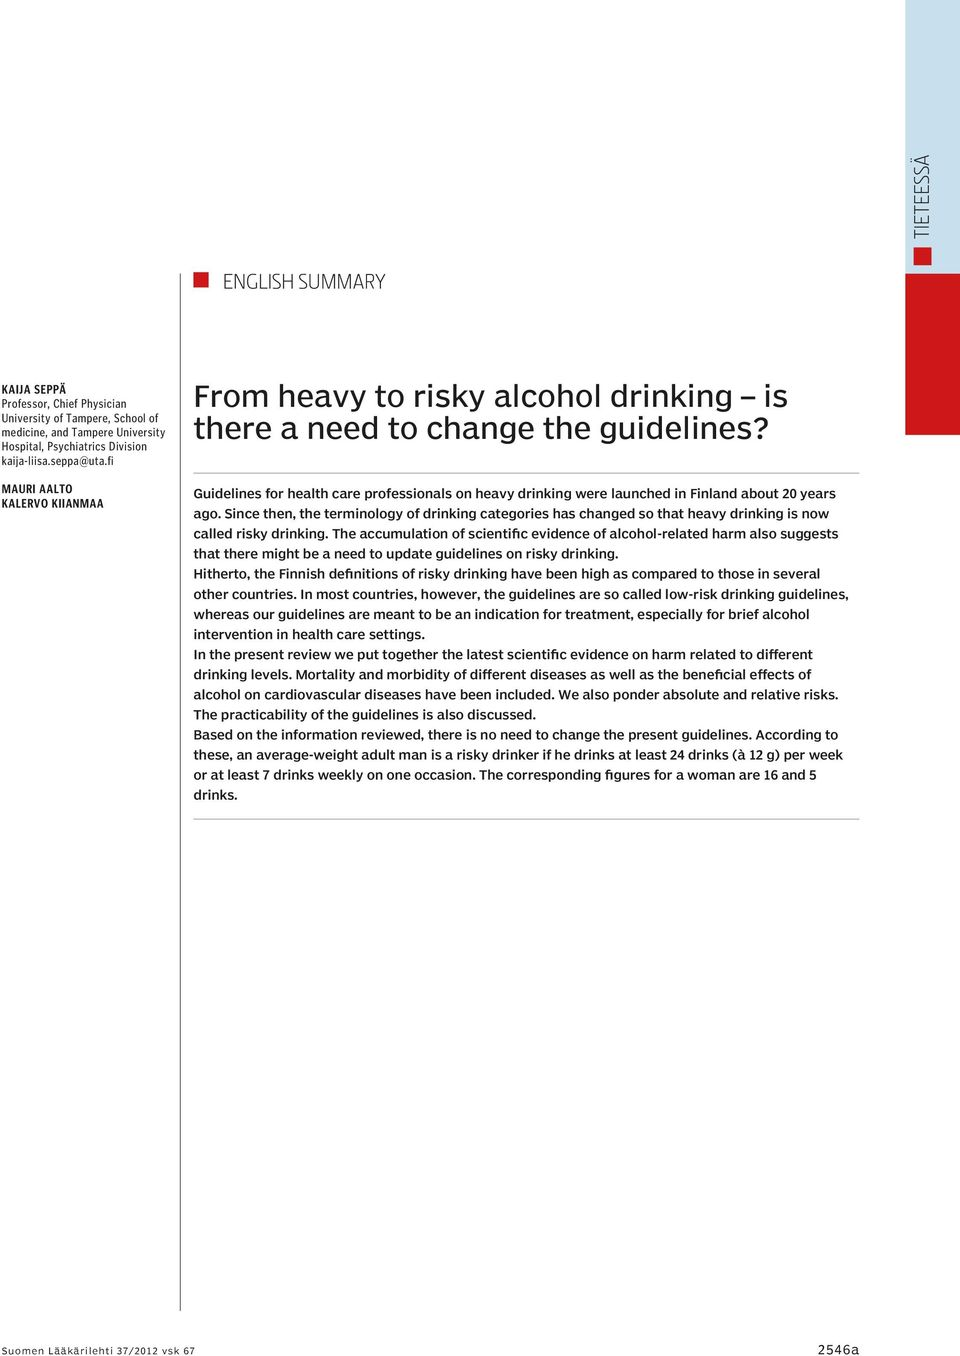 Guidelines for health care professionals on heavy drinking were launched in Finland about 20 years ago.